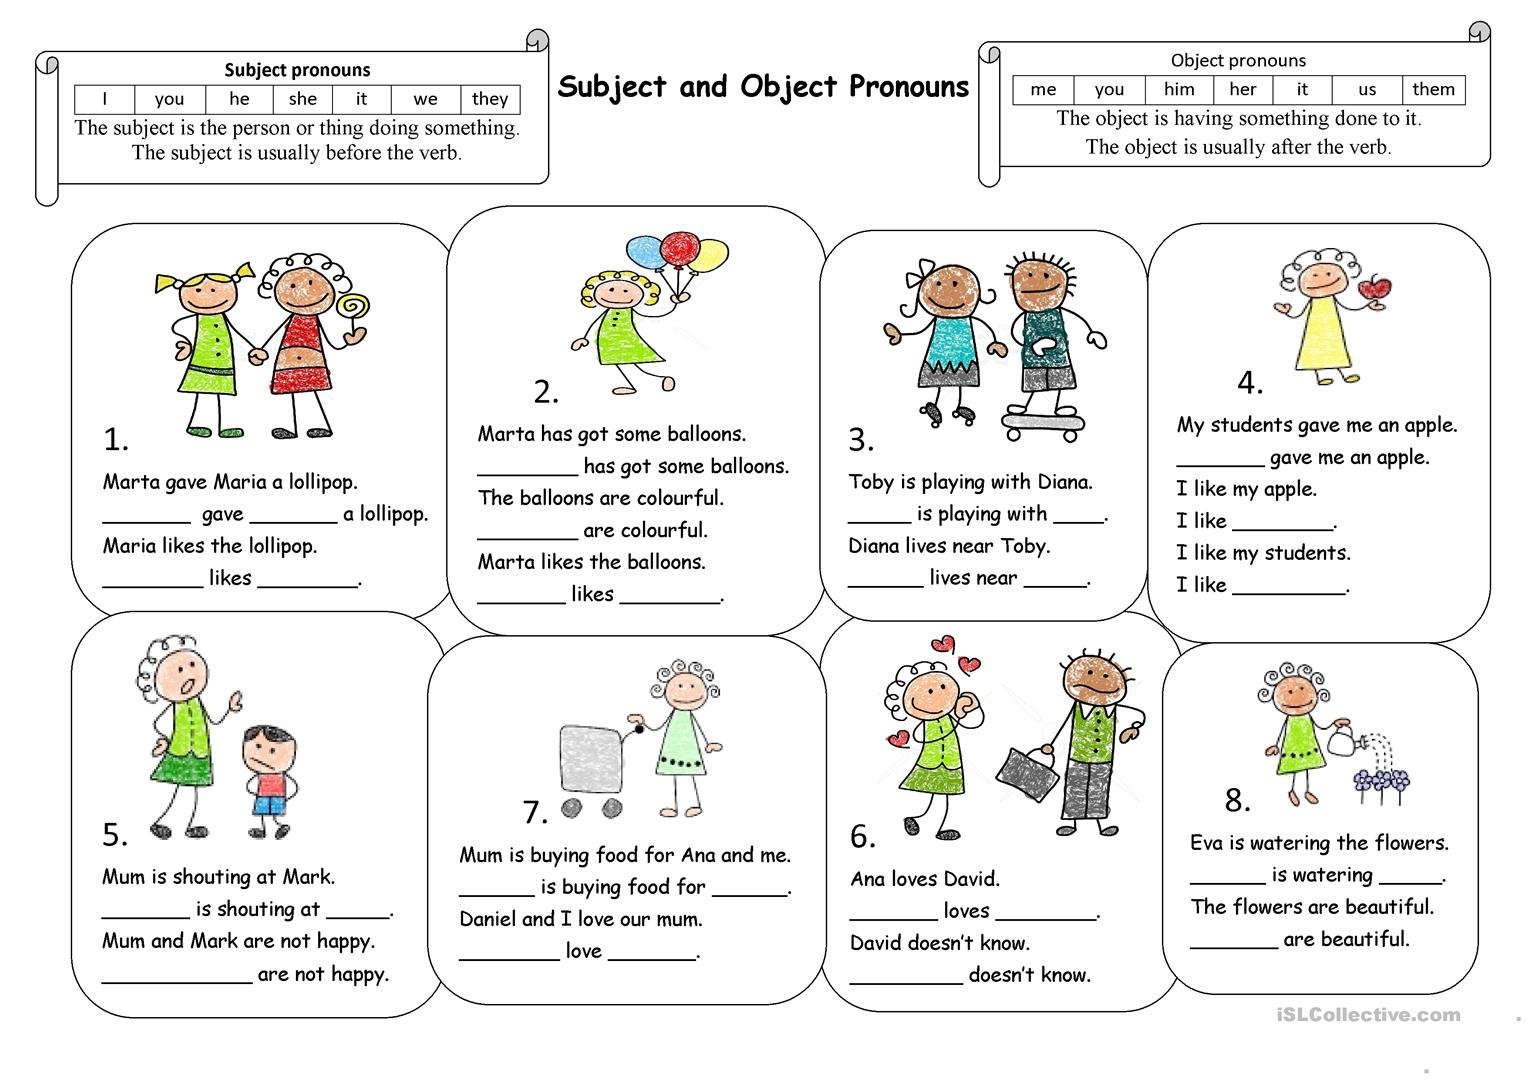 Worksheets Subject And Object Pronouns Worksheets subject and object pronouns worksheet free esl printable full screen